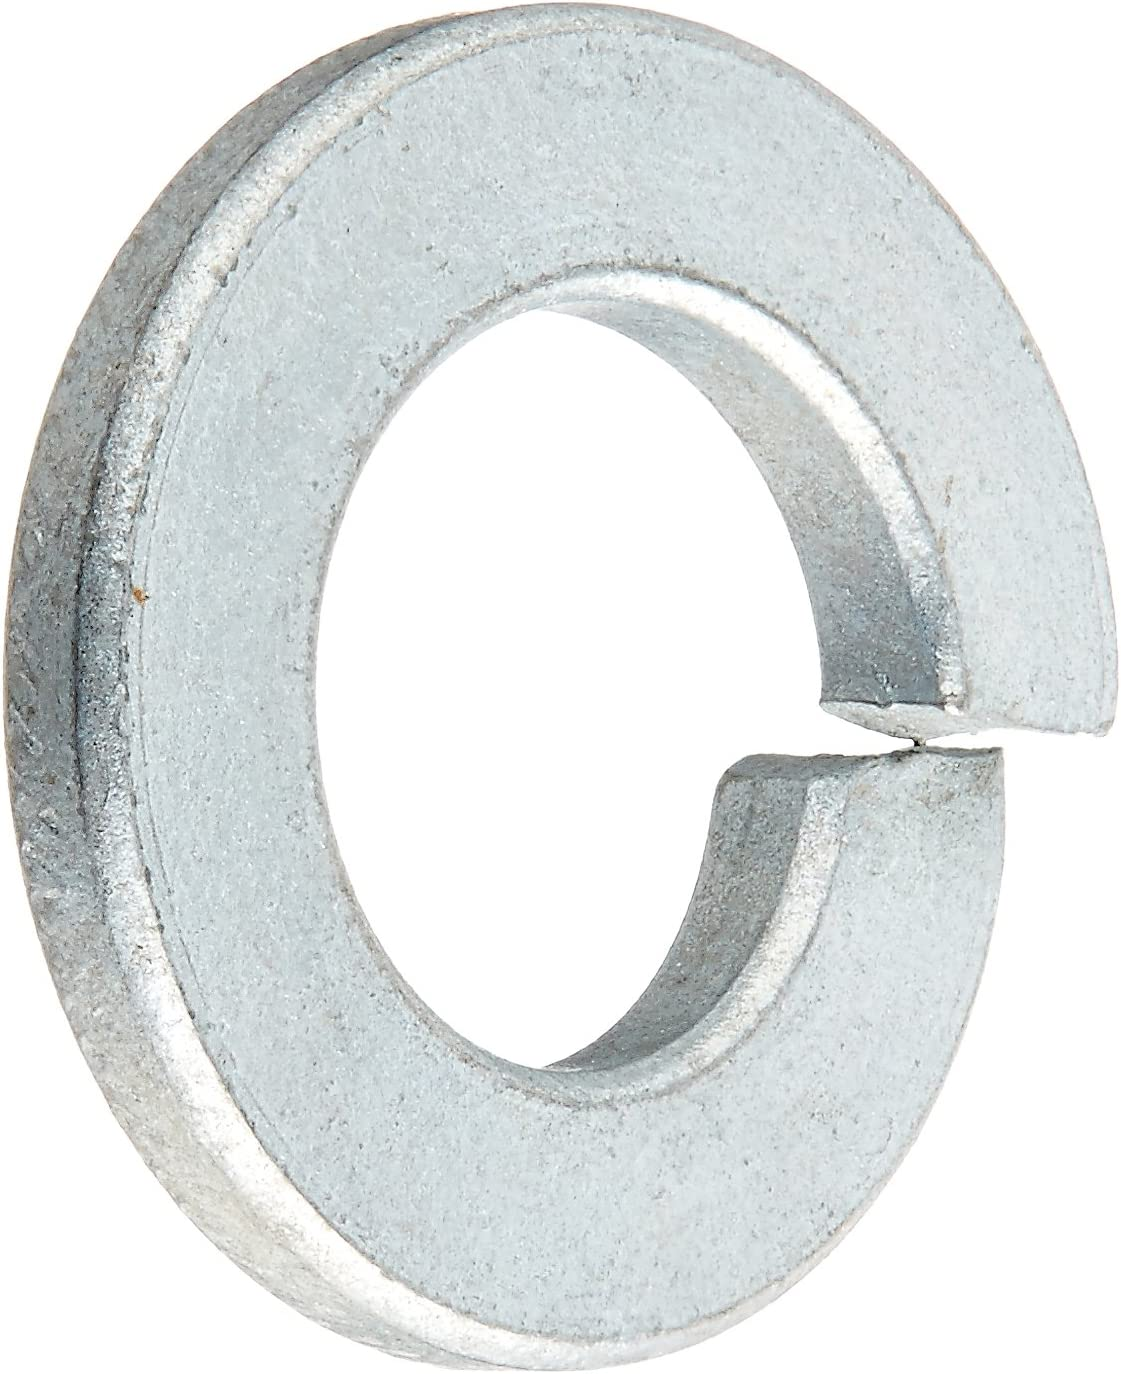 The Hillman Group 300021 New color Split Lock 5 16-Inch 100- National products Washer Zinc